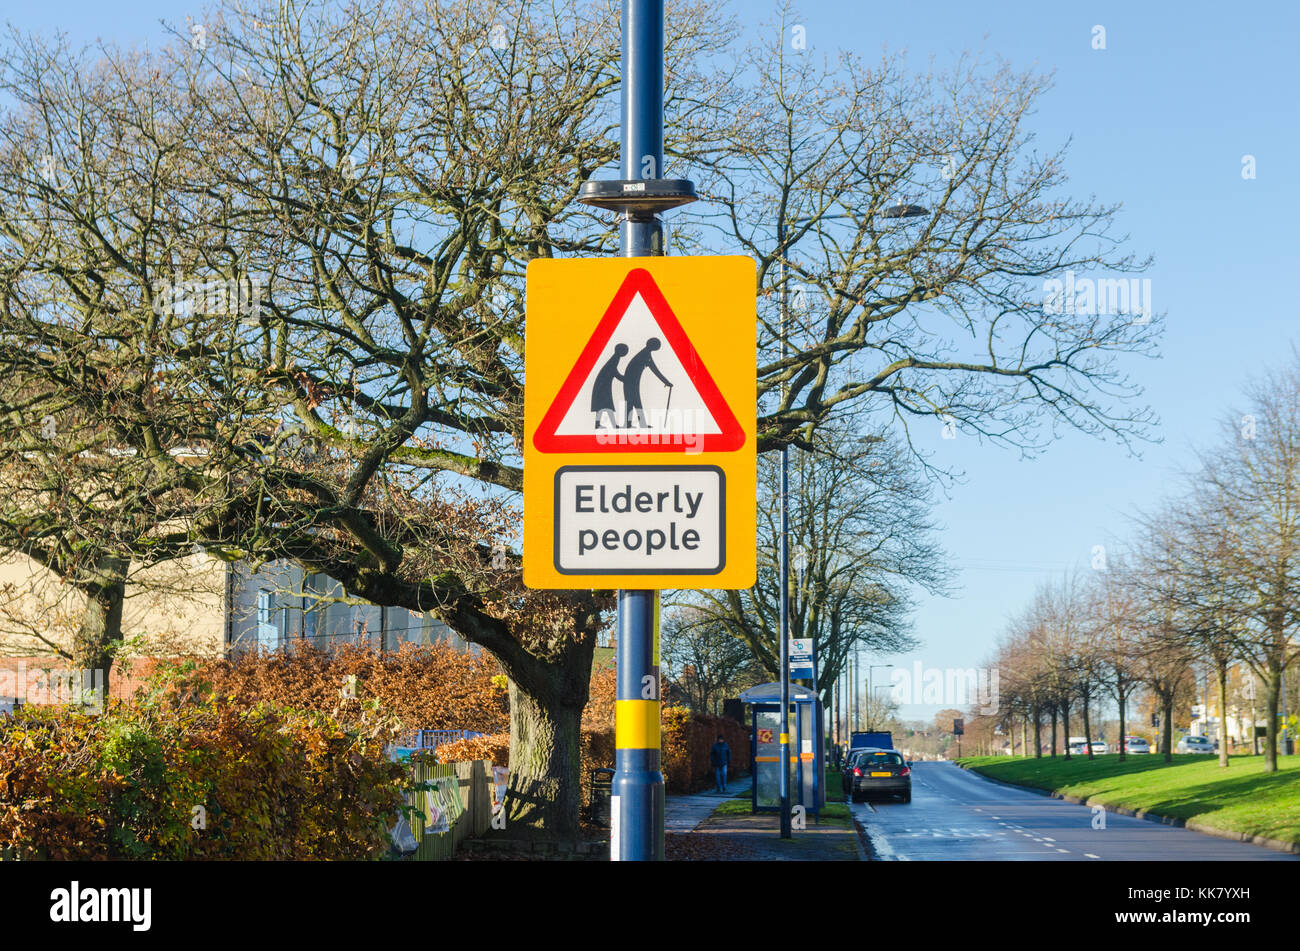 Sign warning of elderly people crossing the road - Stock Image